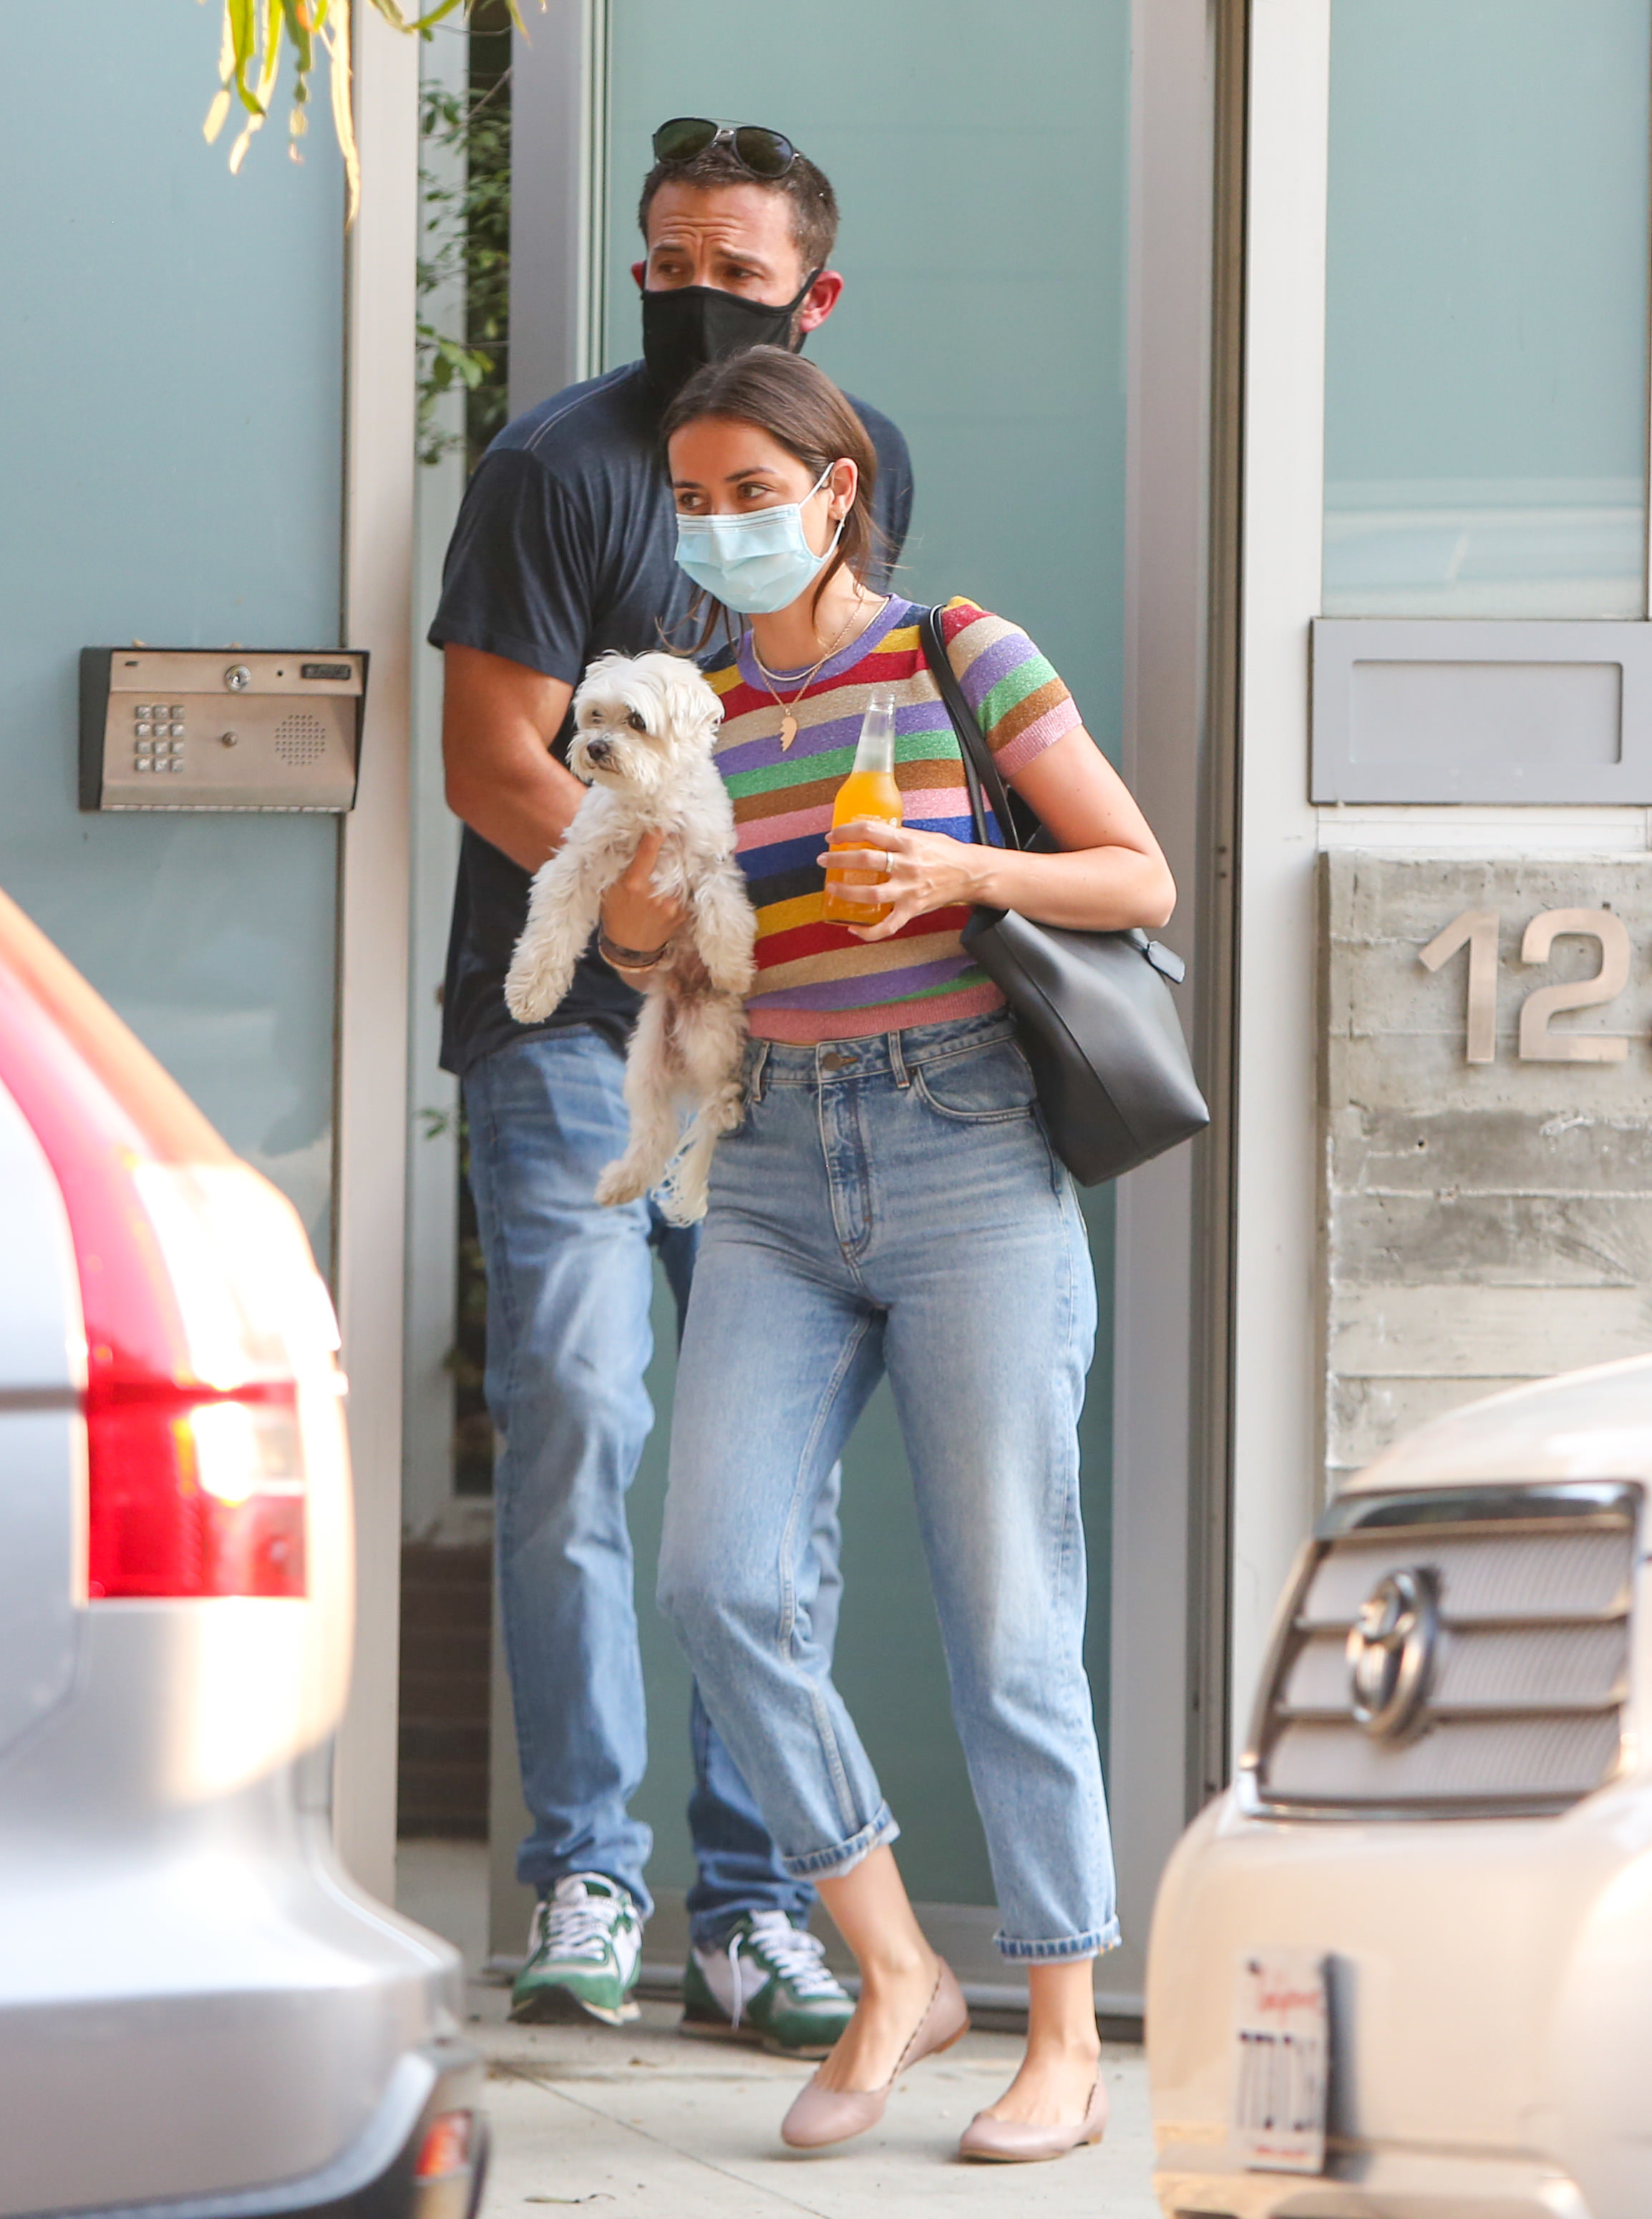 Ben Affleck and Ana de Armas are seen walking out of a building with a dog